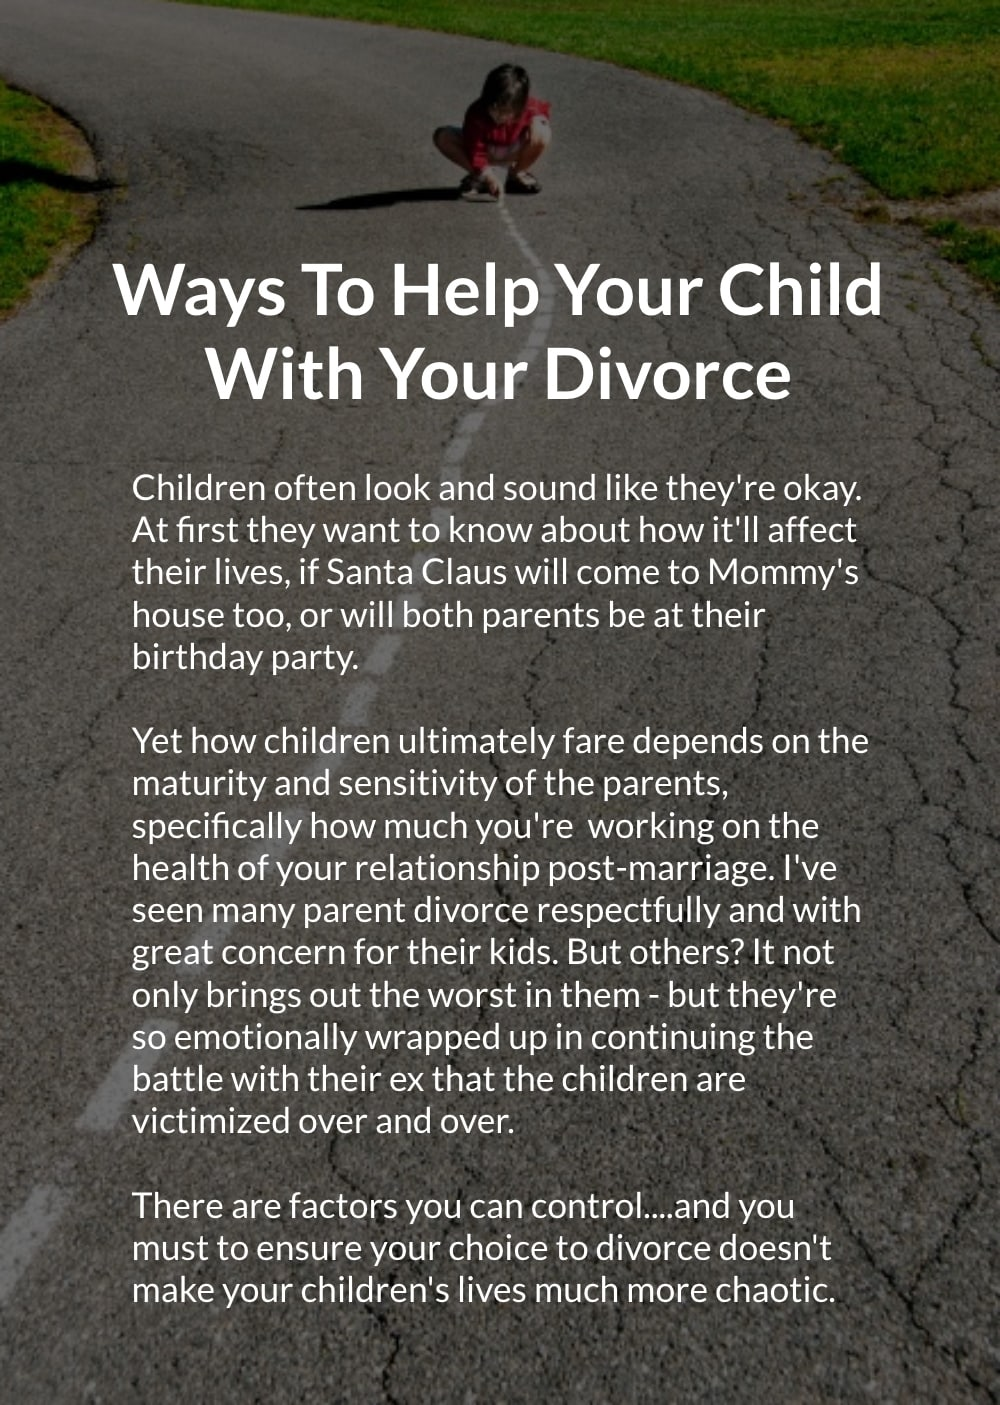 Help Your Child With Your Divorce